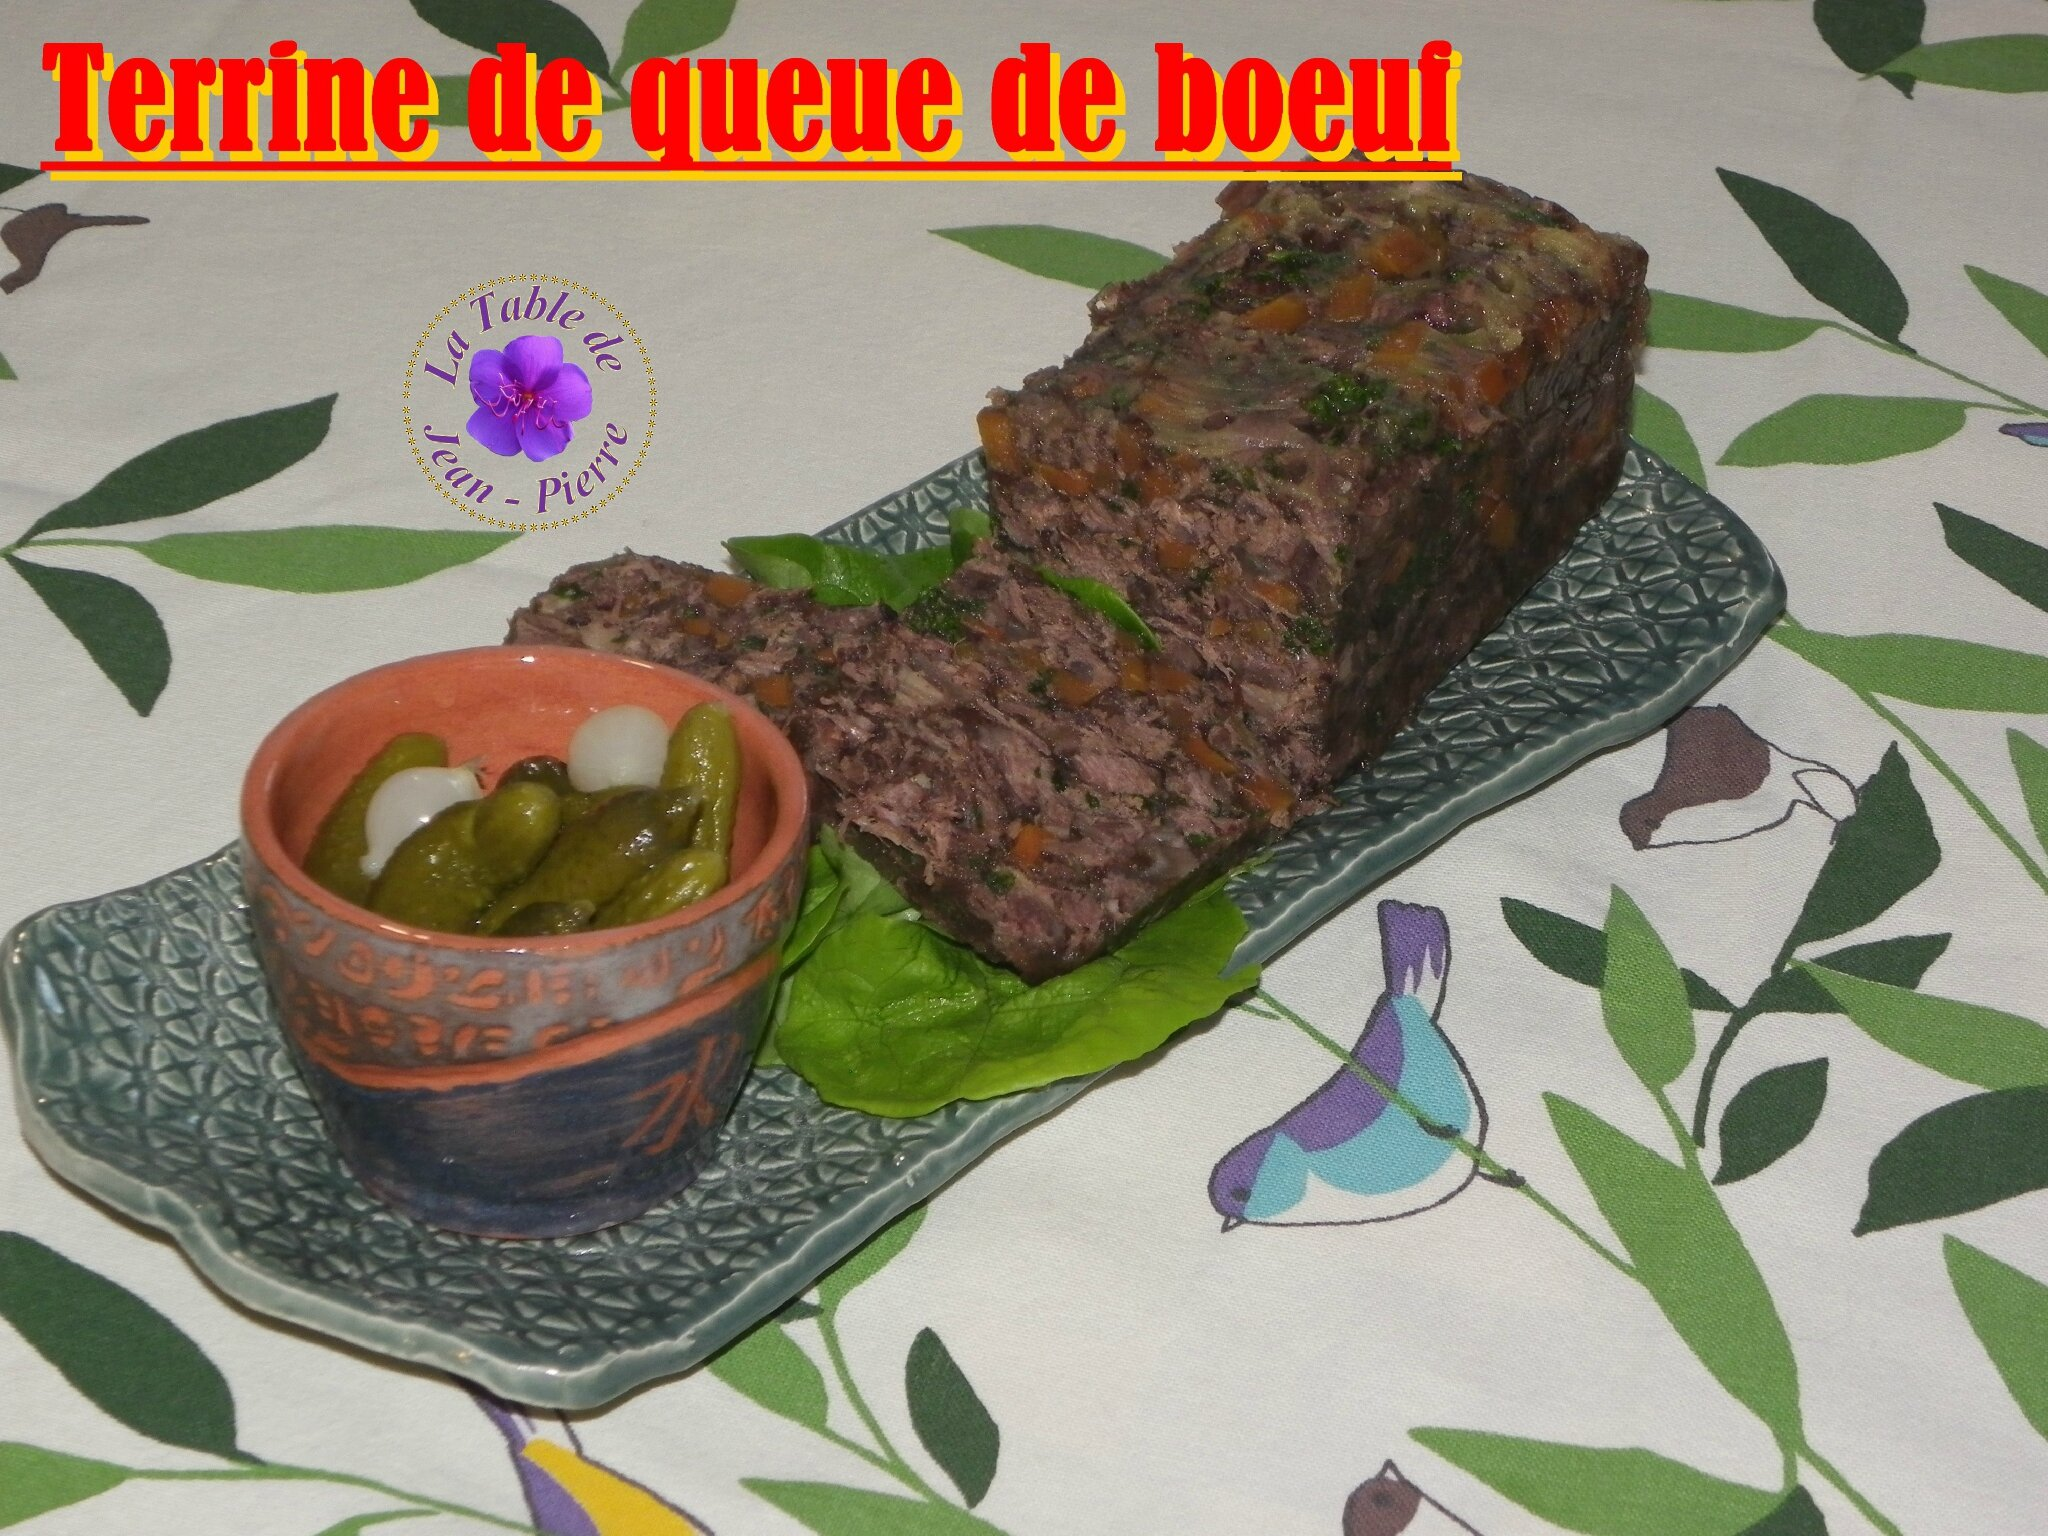 Terrine de queue de bœuf